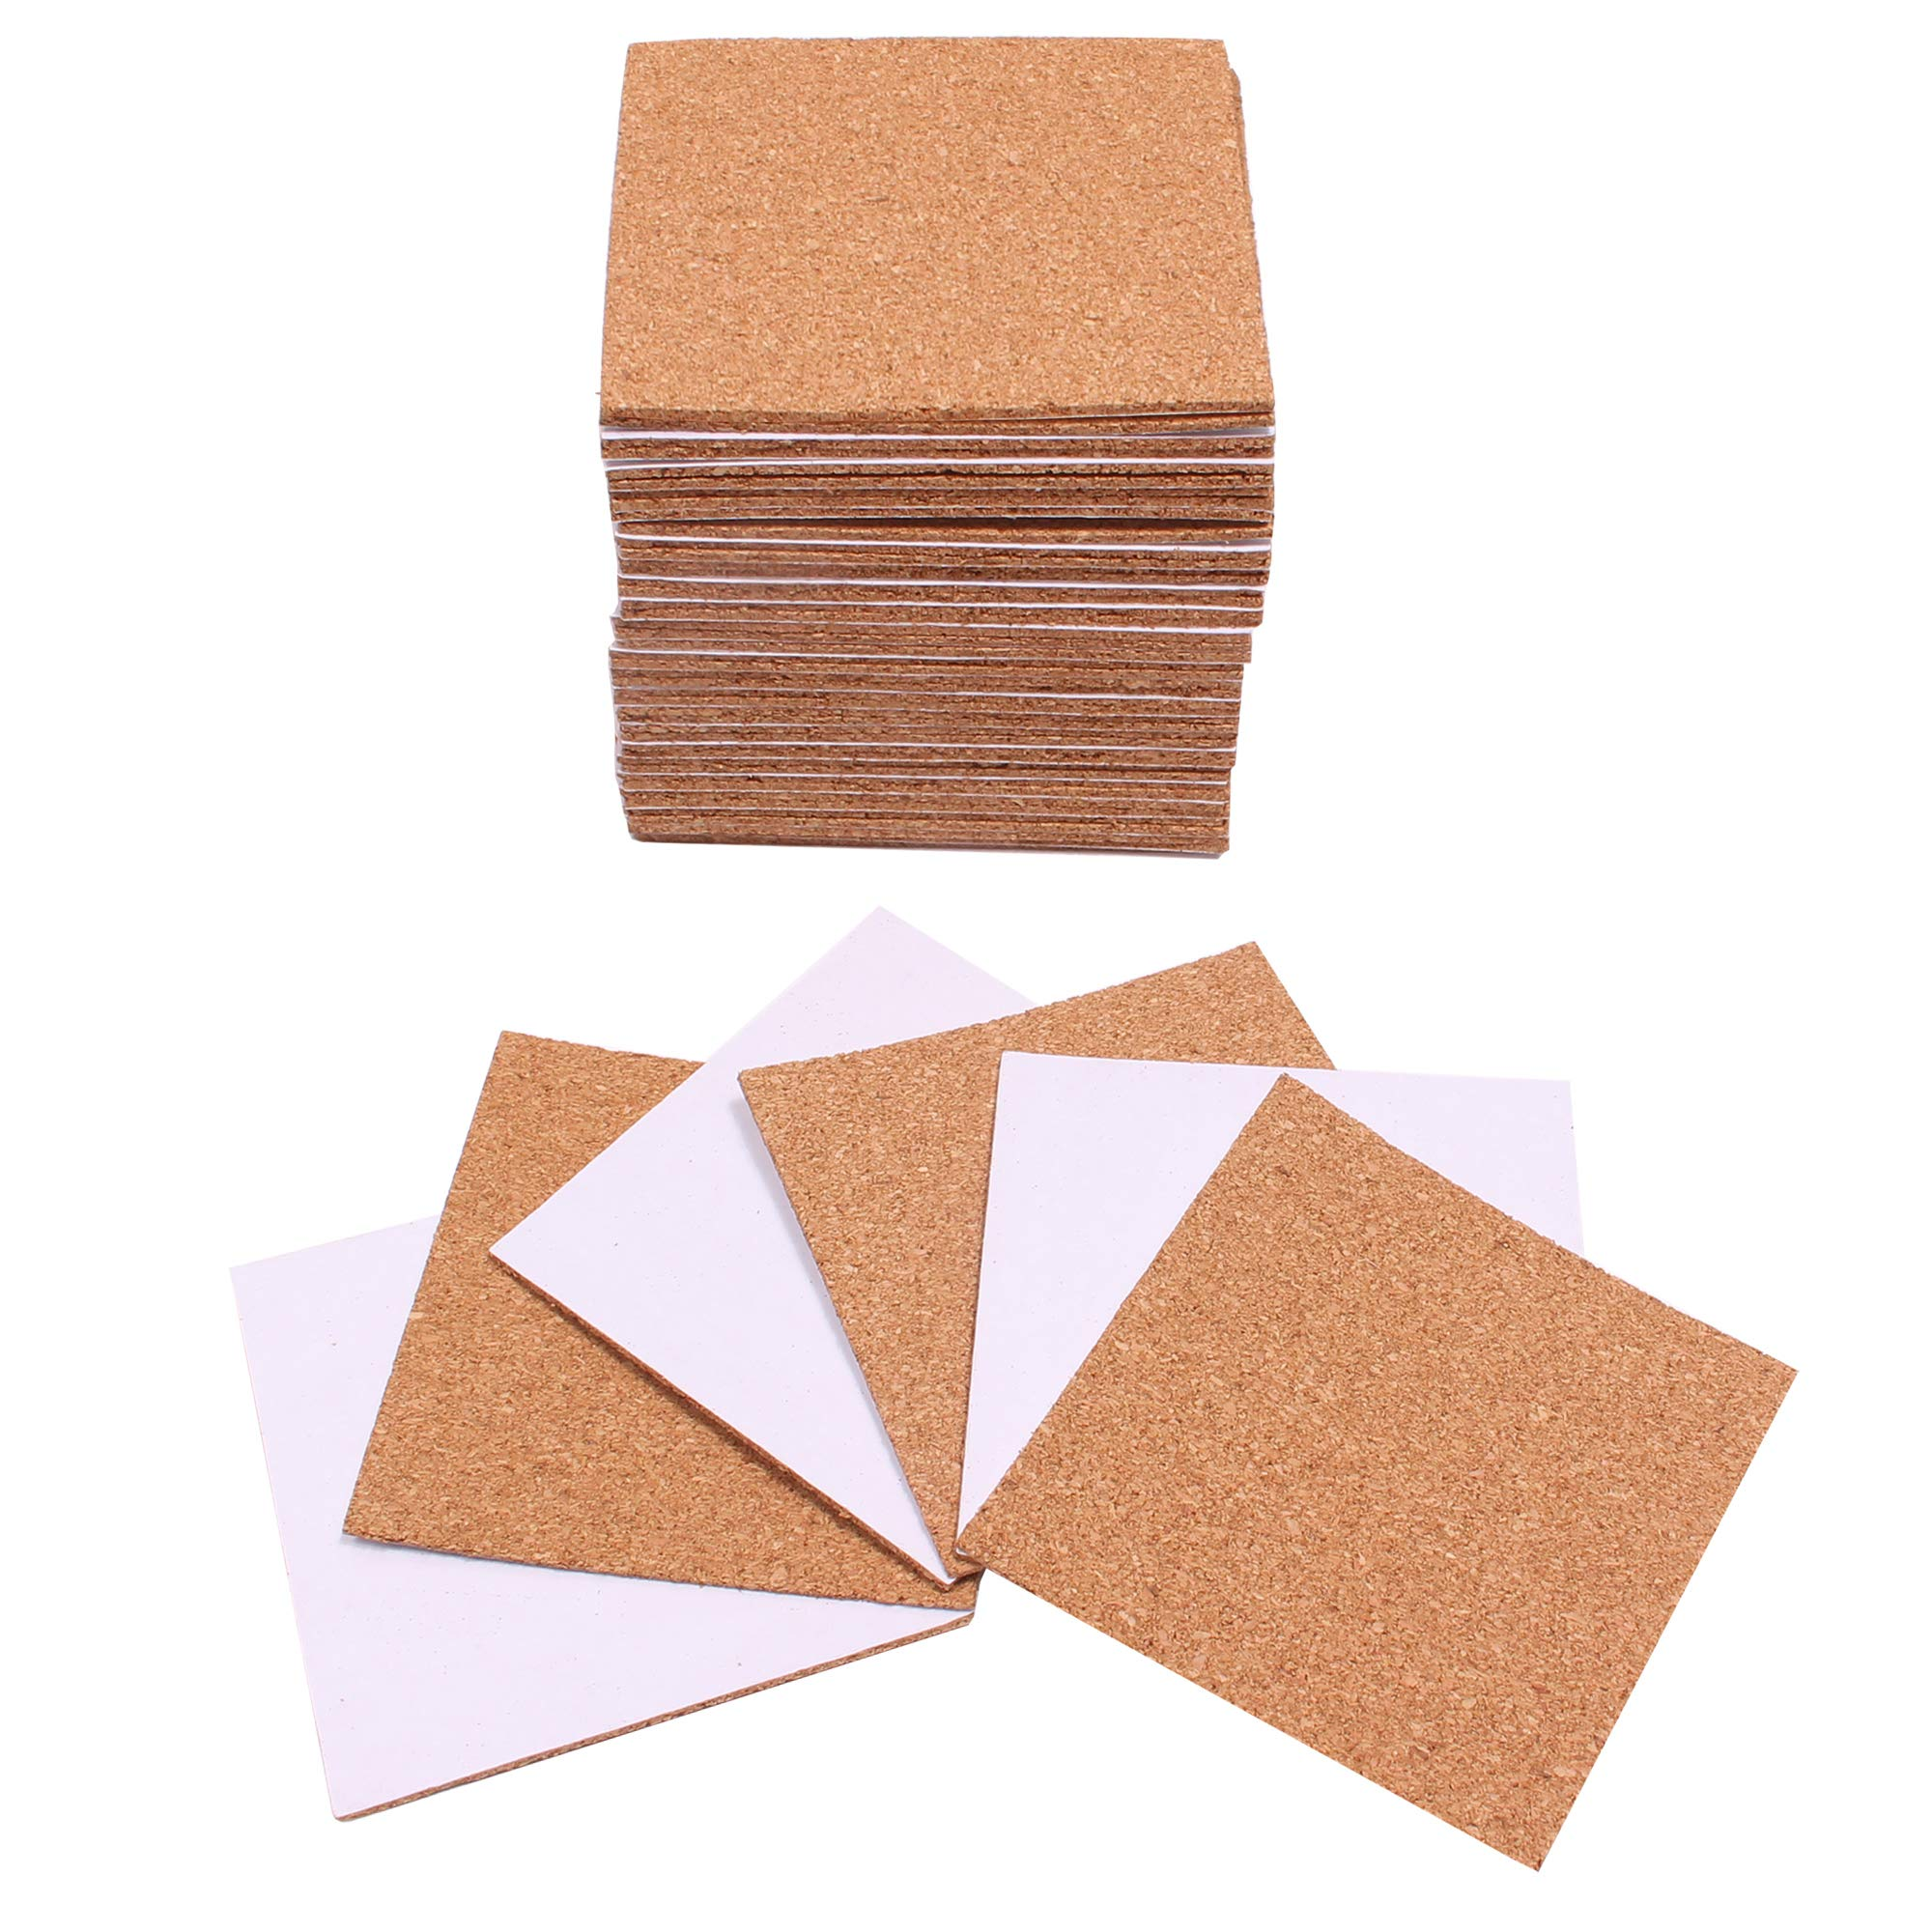 Square Cork Coasters Cork Tiles Mini Wall Cork Tiles with Strong Self Adhesive Backing by Blisstime 80 Pcs Self-Adhesive Cork Sheets 4x 4 for DIY Coasters Cork Mats